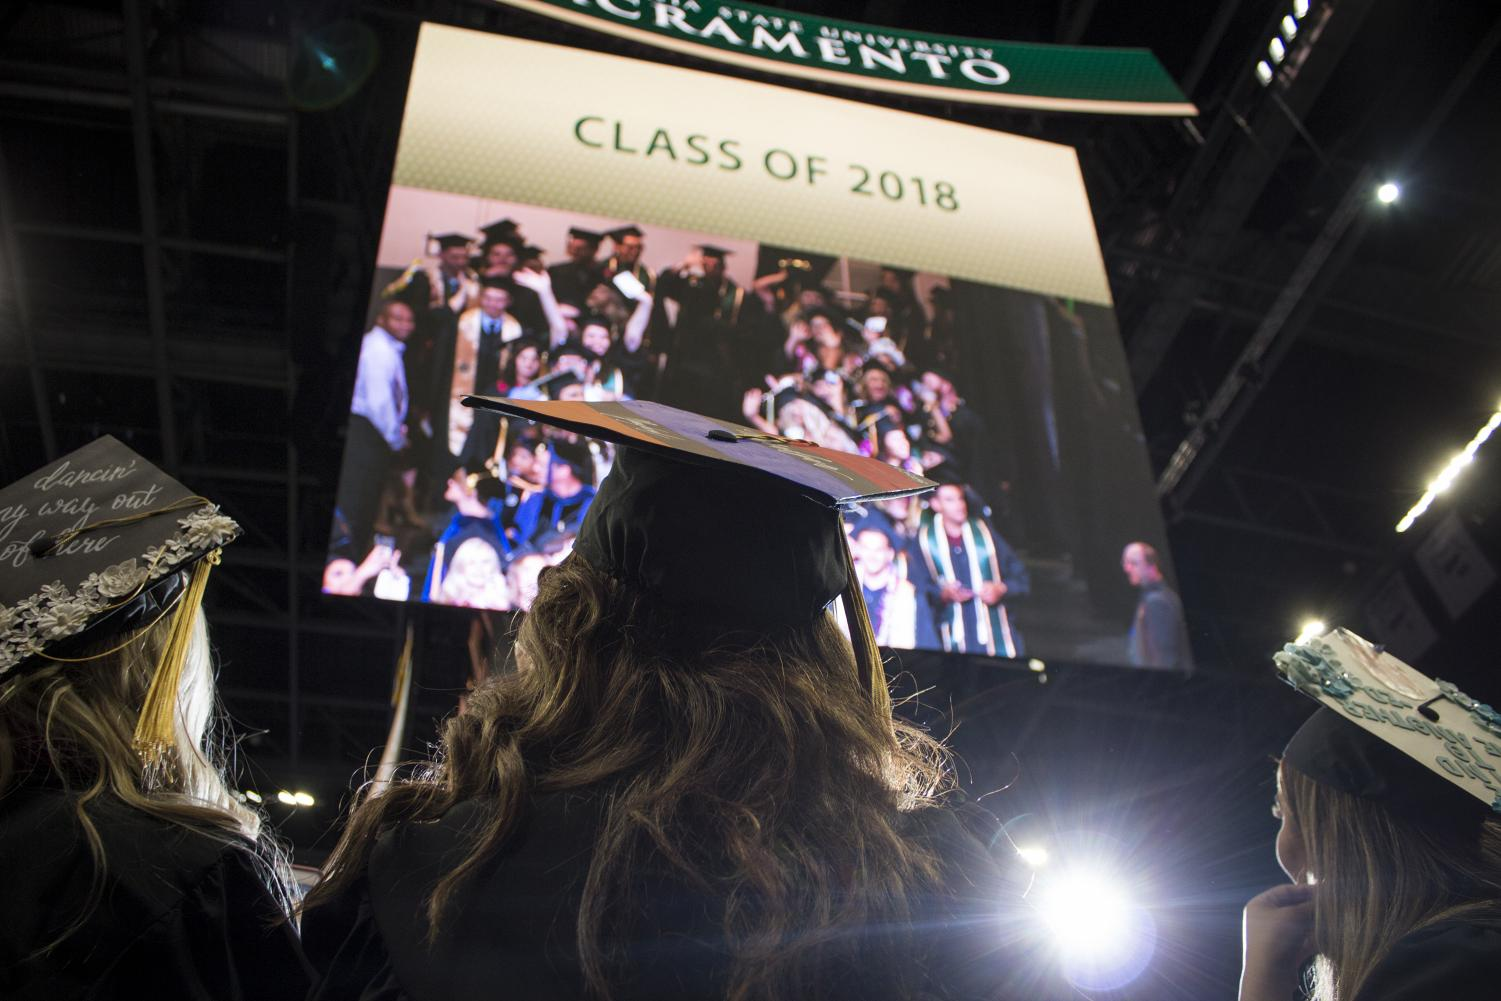 Graduating Sac State students watch themselves on a giant screen inside the Golden 1 Center during commencement on Friday, May 18, 2018. Sac State rose to No. 13 from No. 22 out of 23 CSUs based on 2019 graduation rates, an increase of 127%.